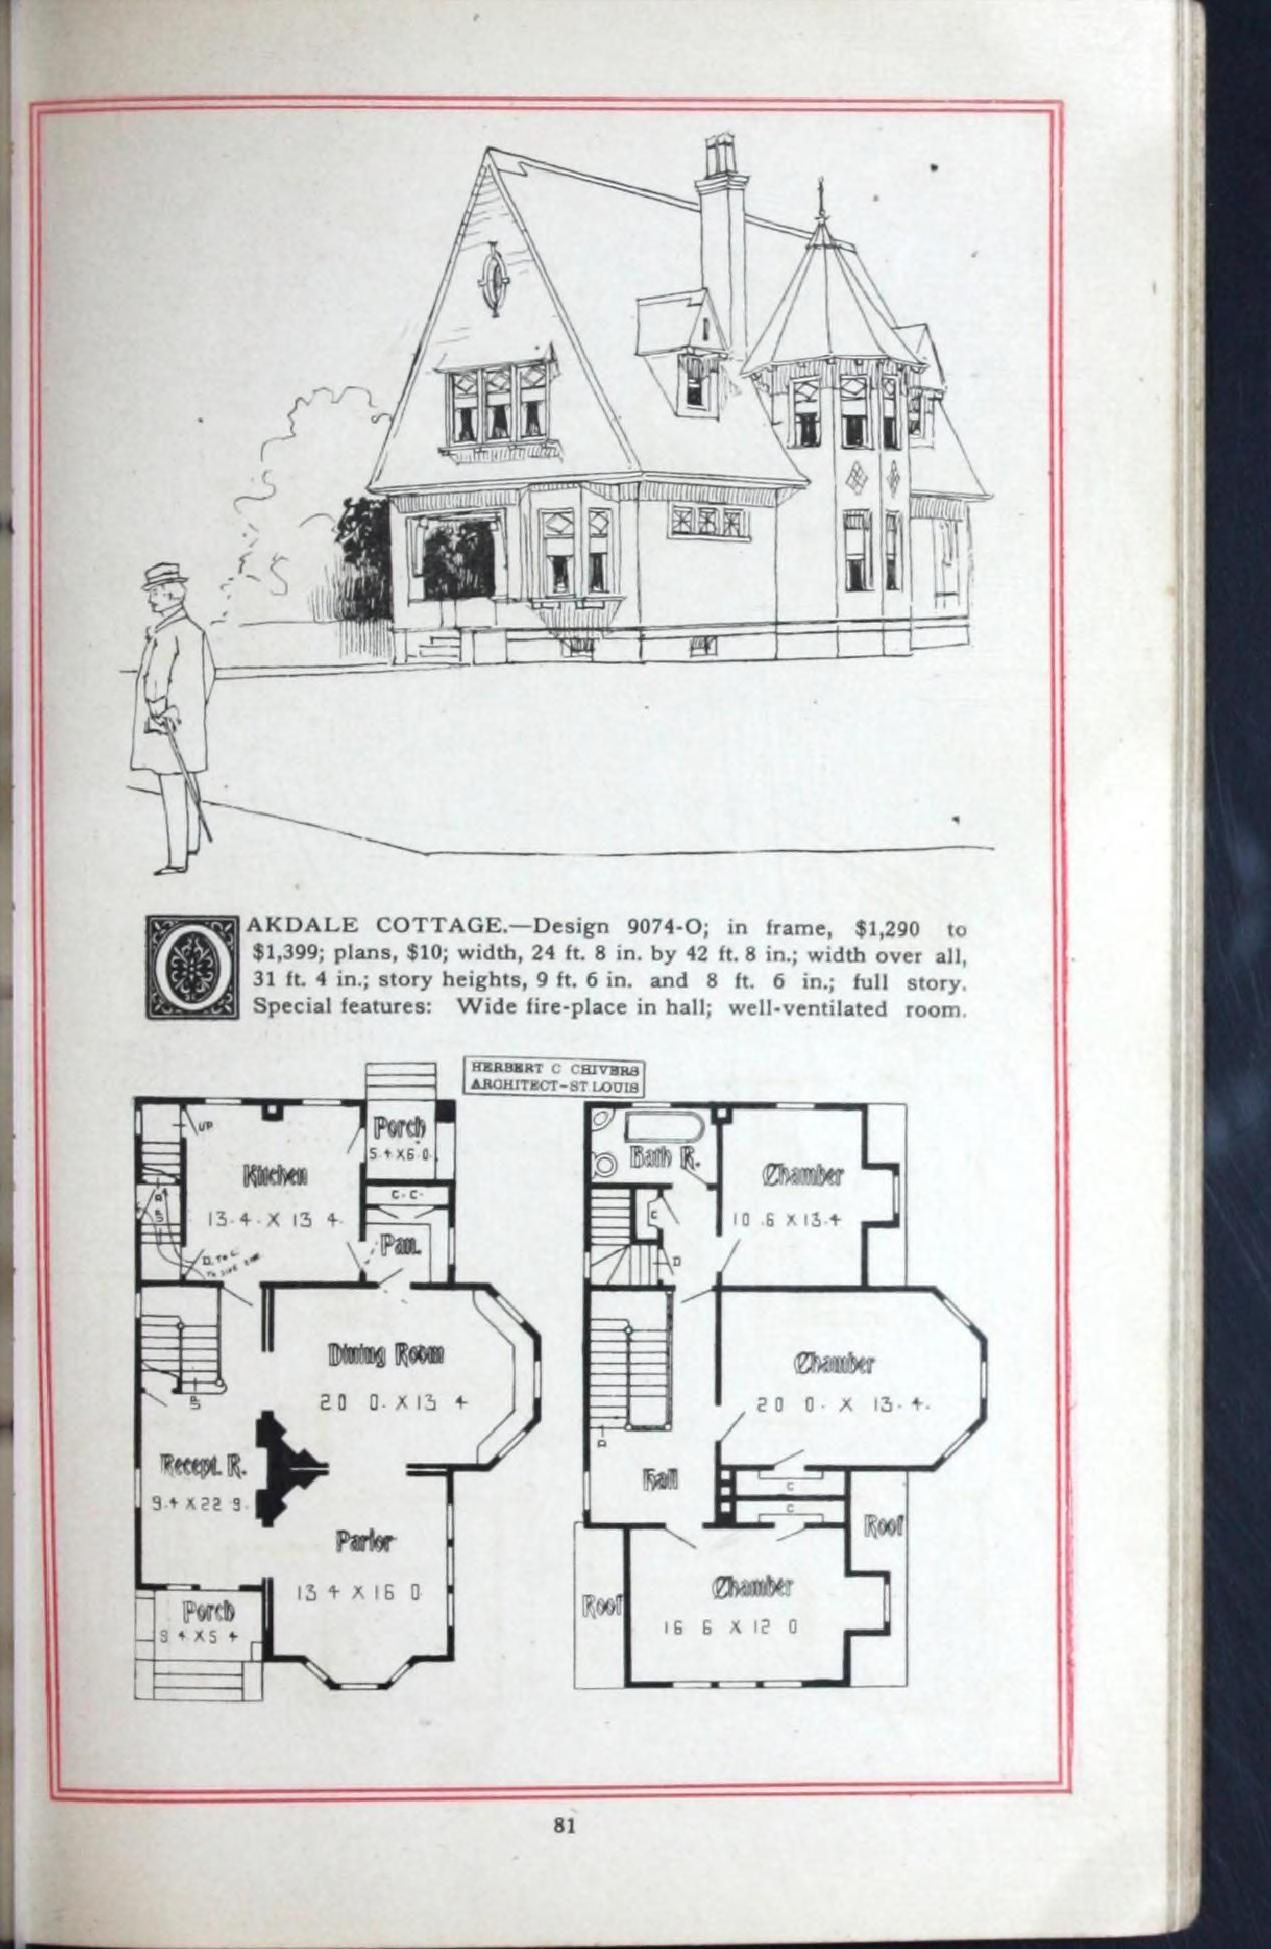 Artistic Homes Herbert C Chivers Architect In 2020 Vintage House Plans How To Plan Arch House